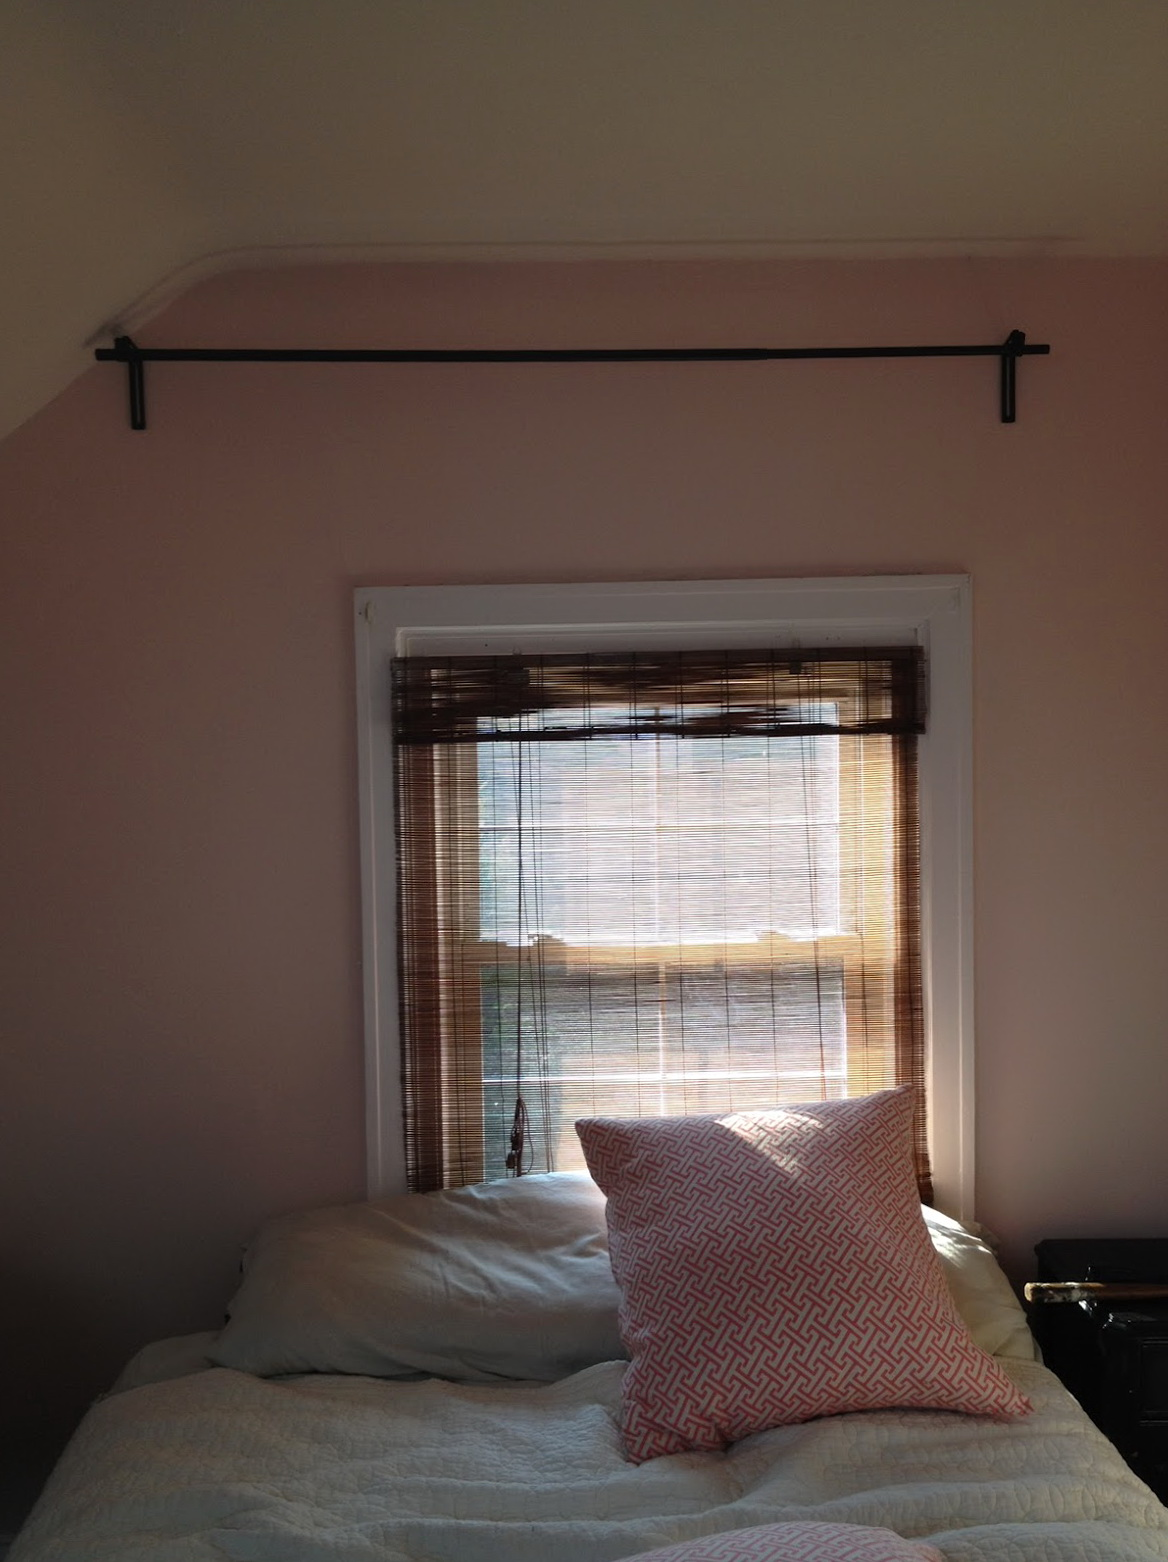 Umbra Curtain Rods Instructions